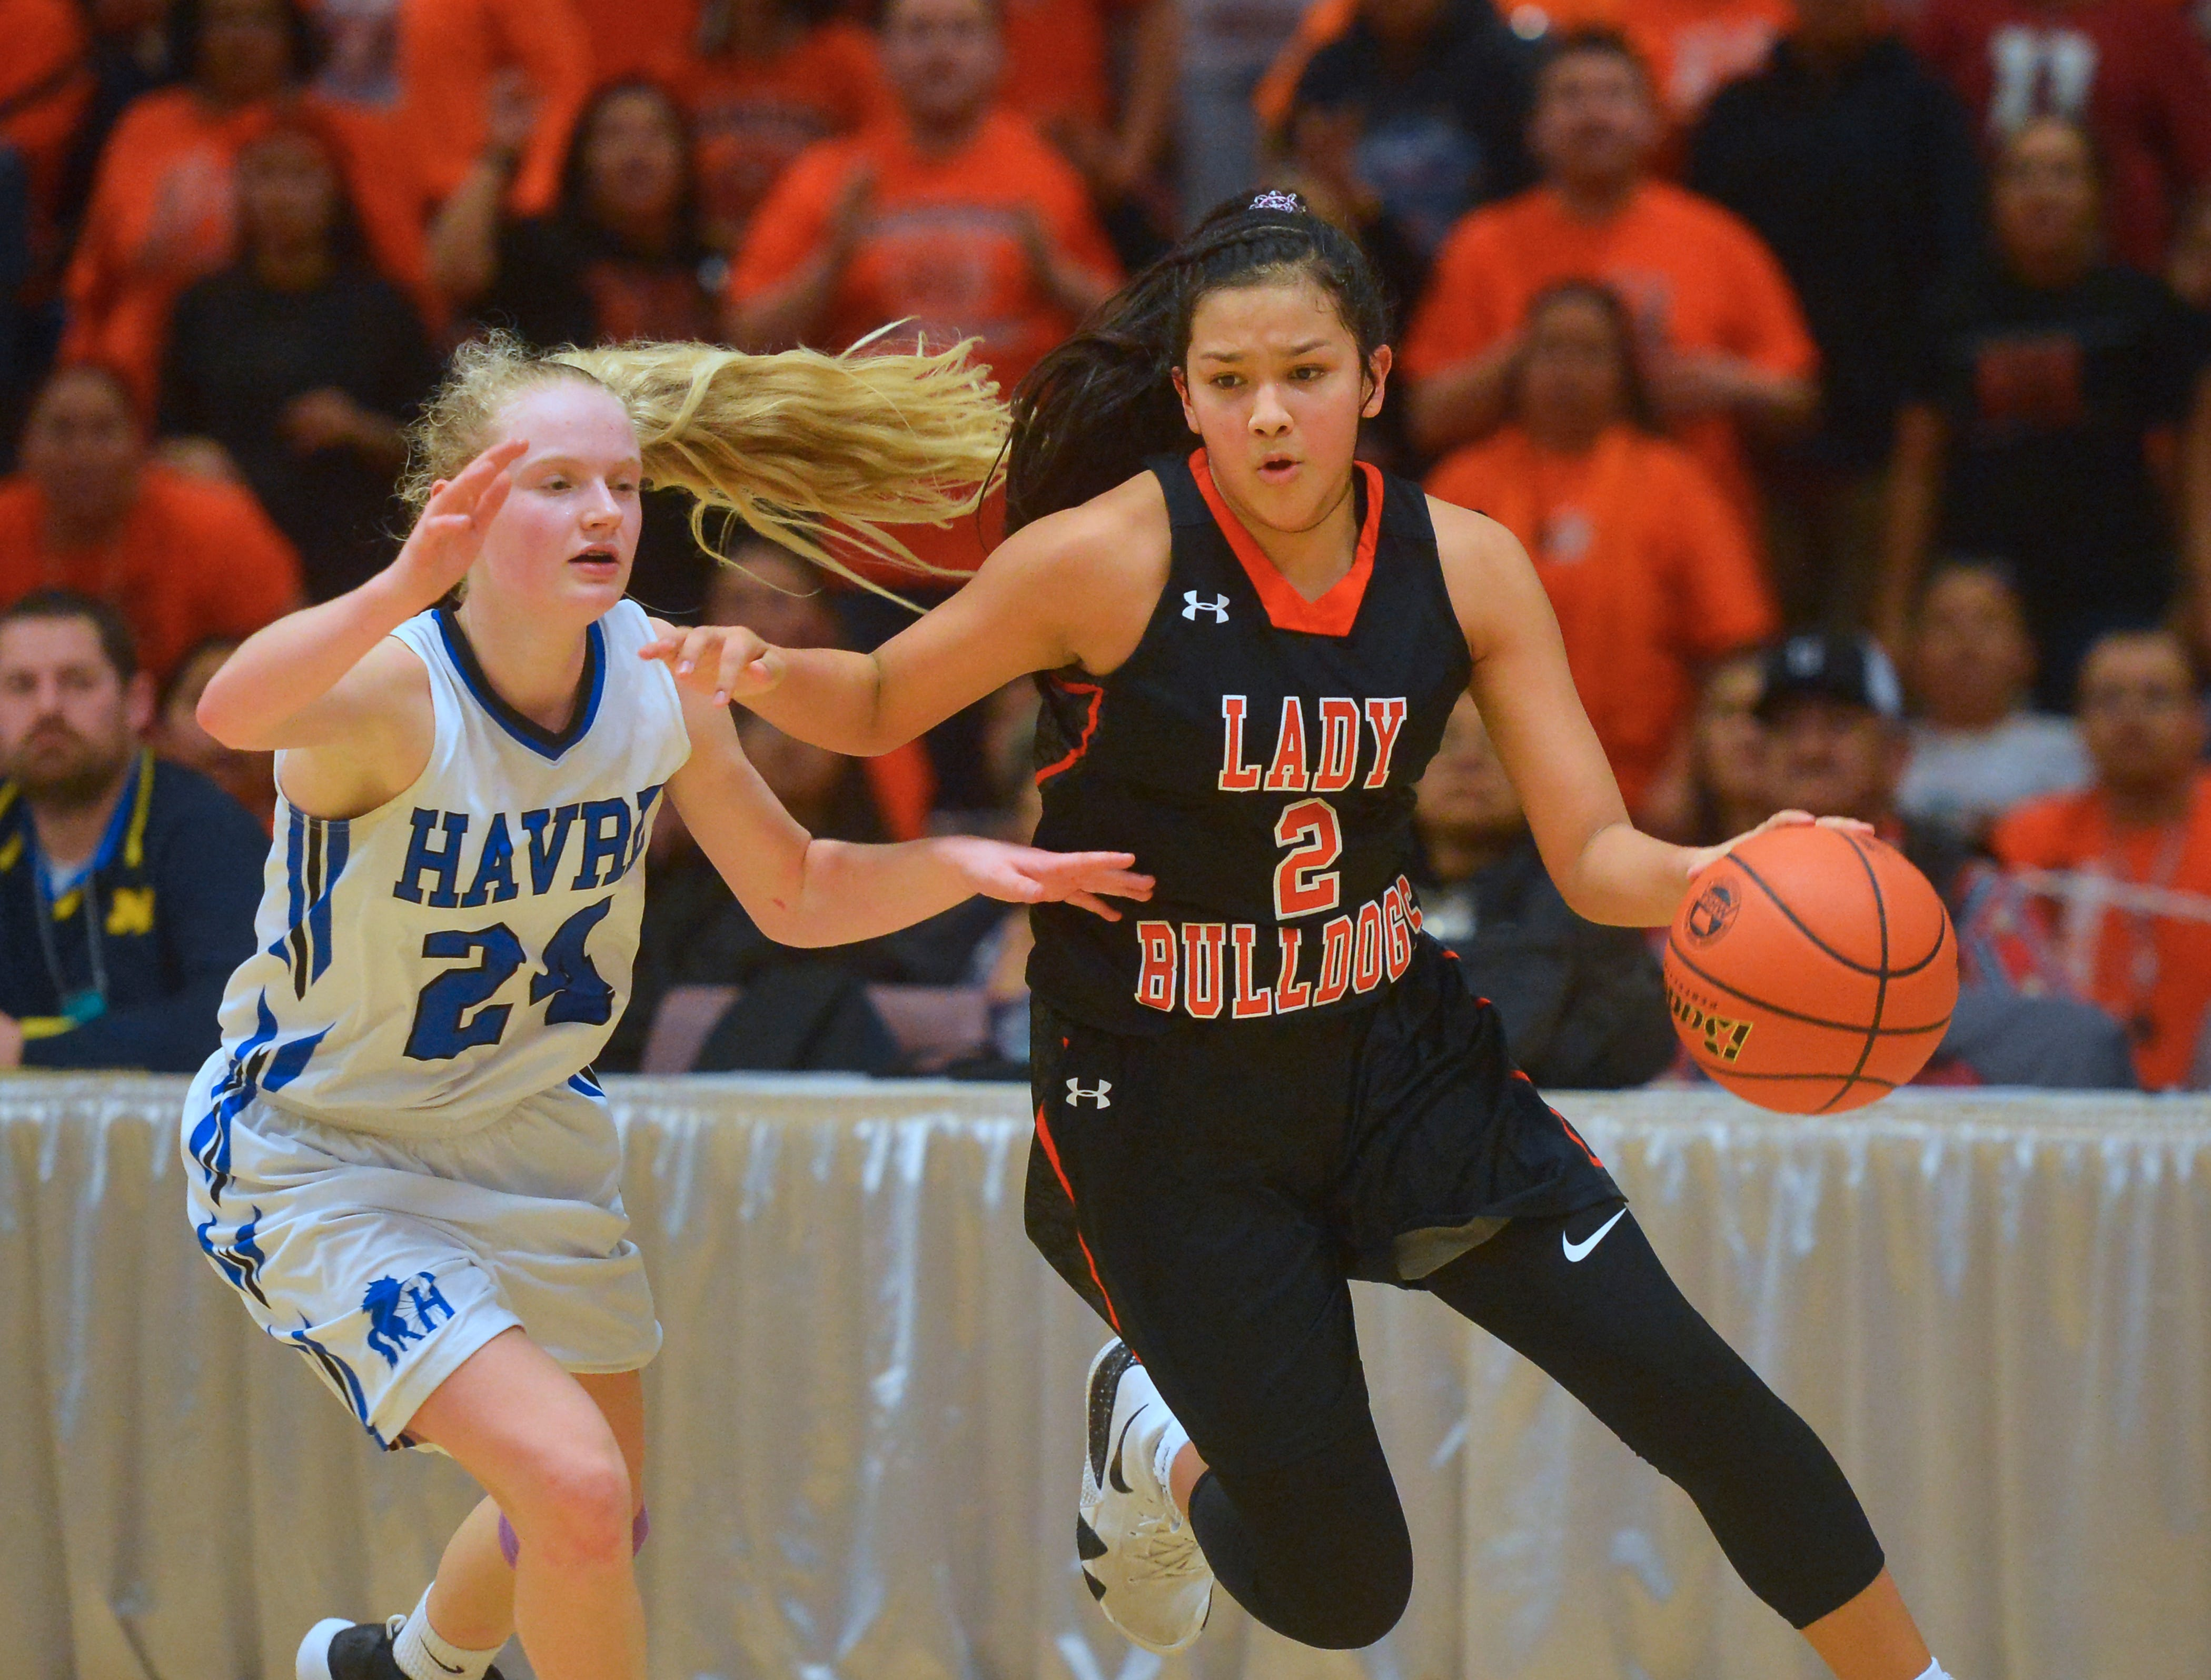 Hardin's Kamber Good Luck drives to the basket as Havre's Sadie Filius defends in the title game of the State Class A Basketball Tournament in the Four Seasons Arena, Saturday.